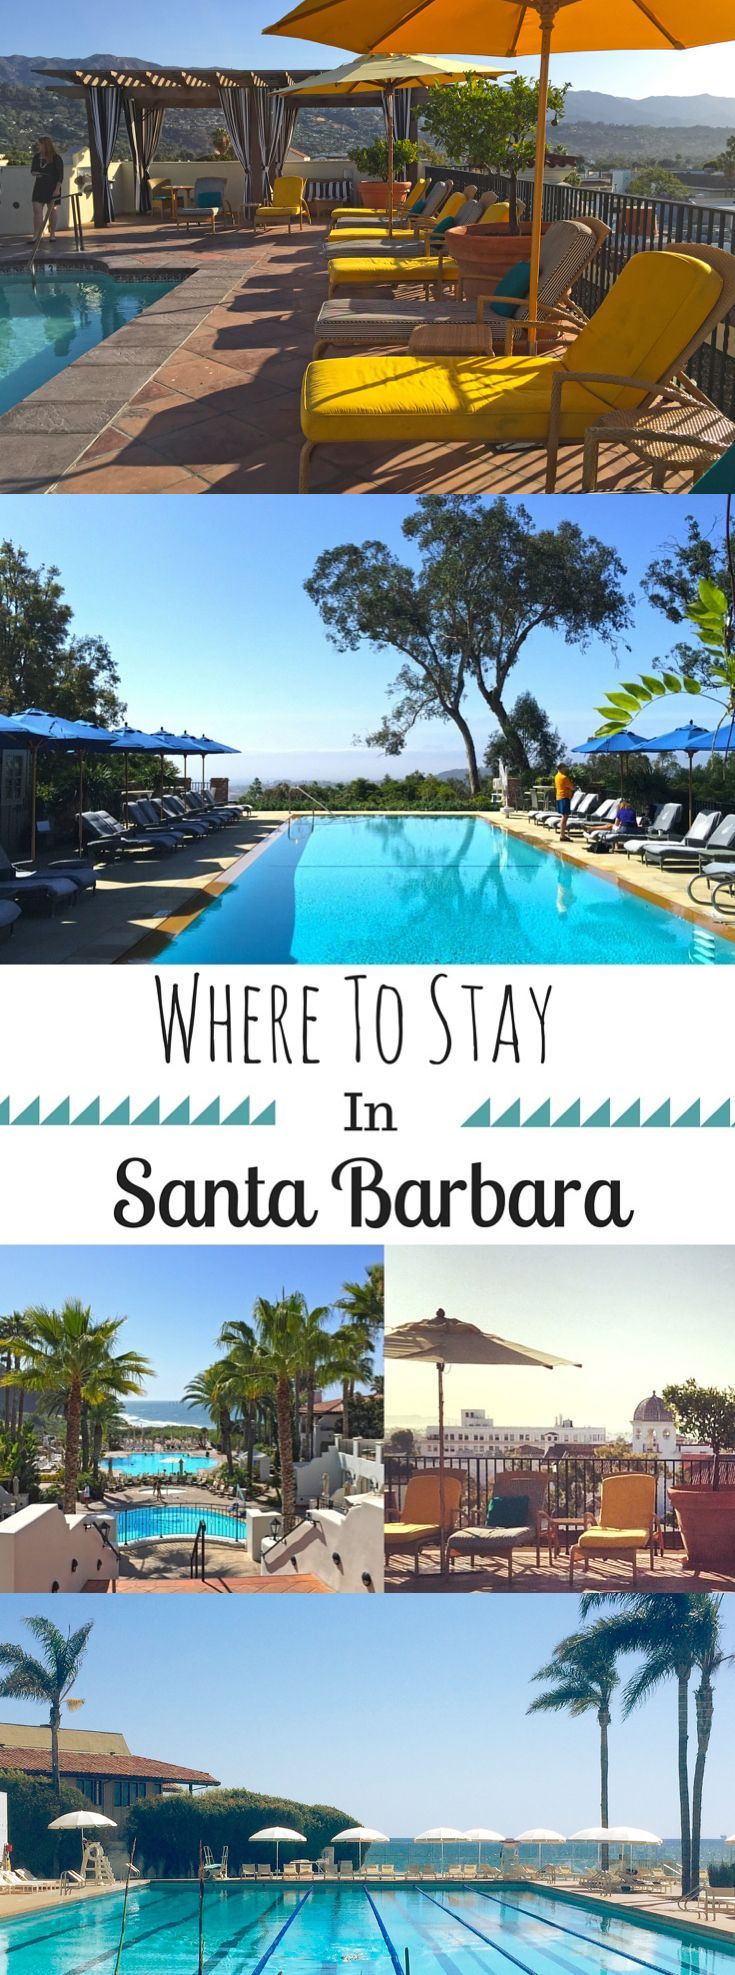 From resorts to retreats and hotels to hideaways, Santa Barbara offers visitors a variety of accommodation options to fit any budget. Whether you want to splurge, spend or save, these are the top places to stay in Santa Barbara